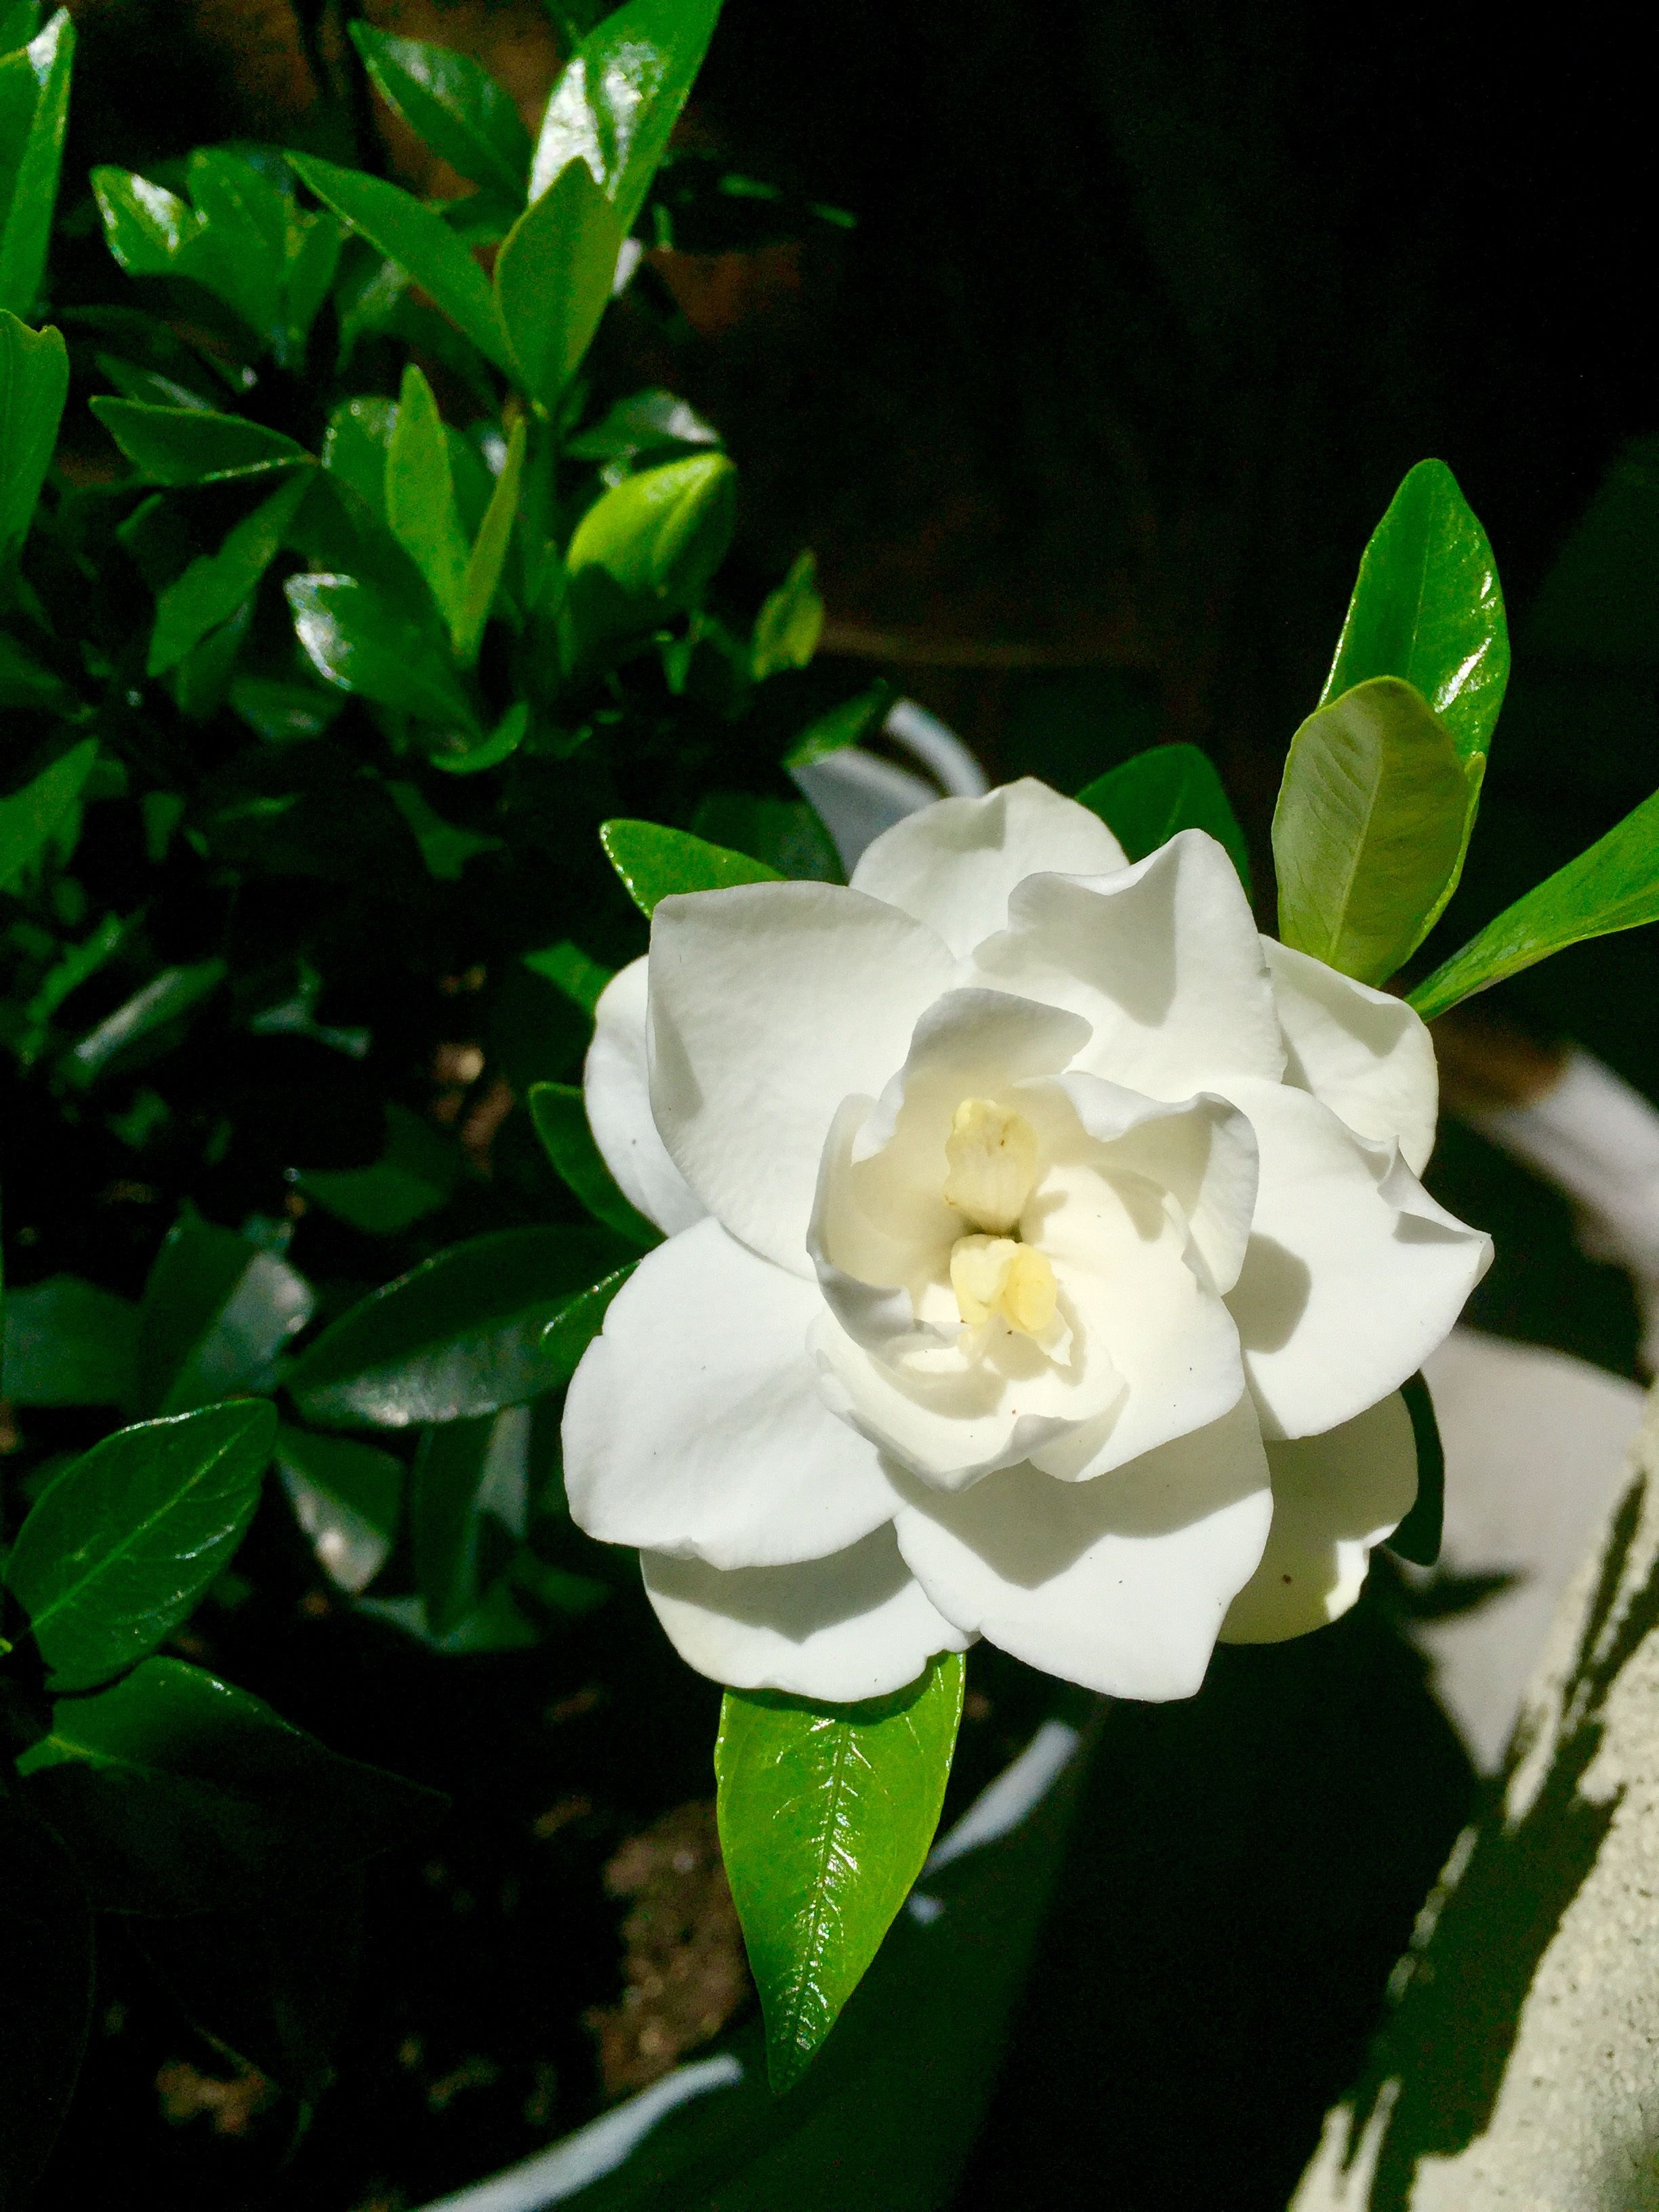 There S Nothing Like The Smell Of Gardenias Blooming In The